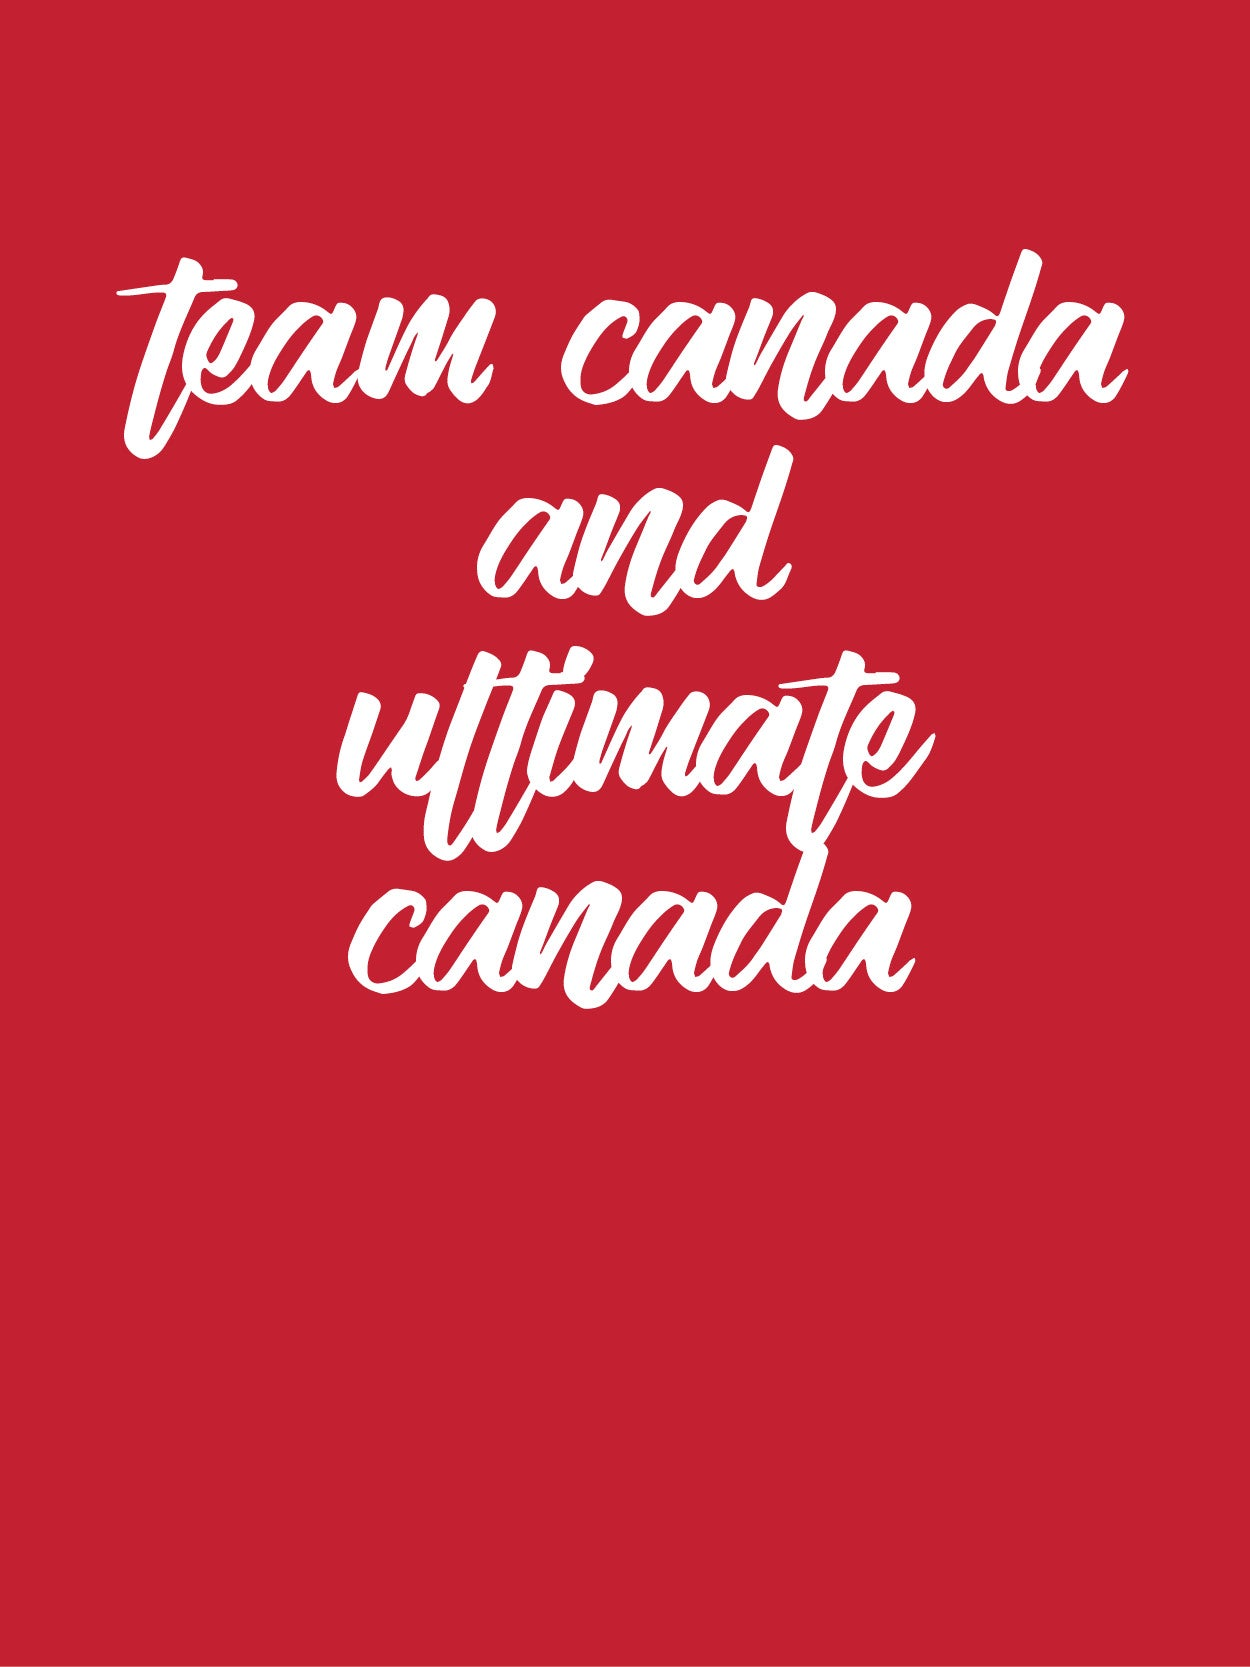 Easy Uniform Guidelines: Ultimate Canada